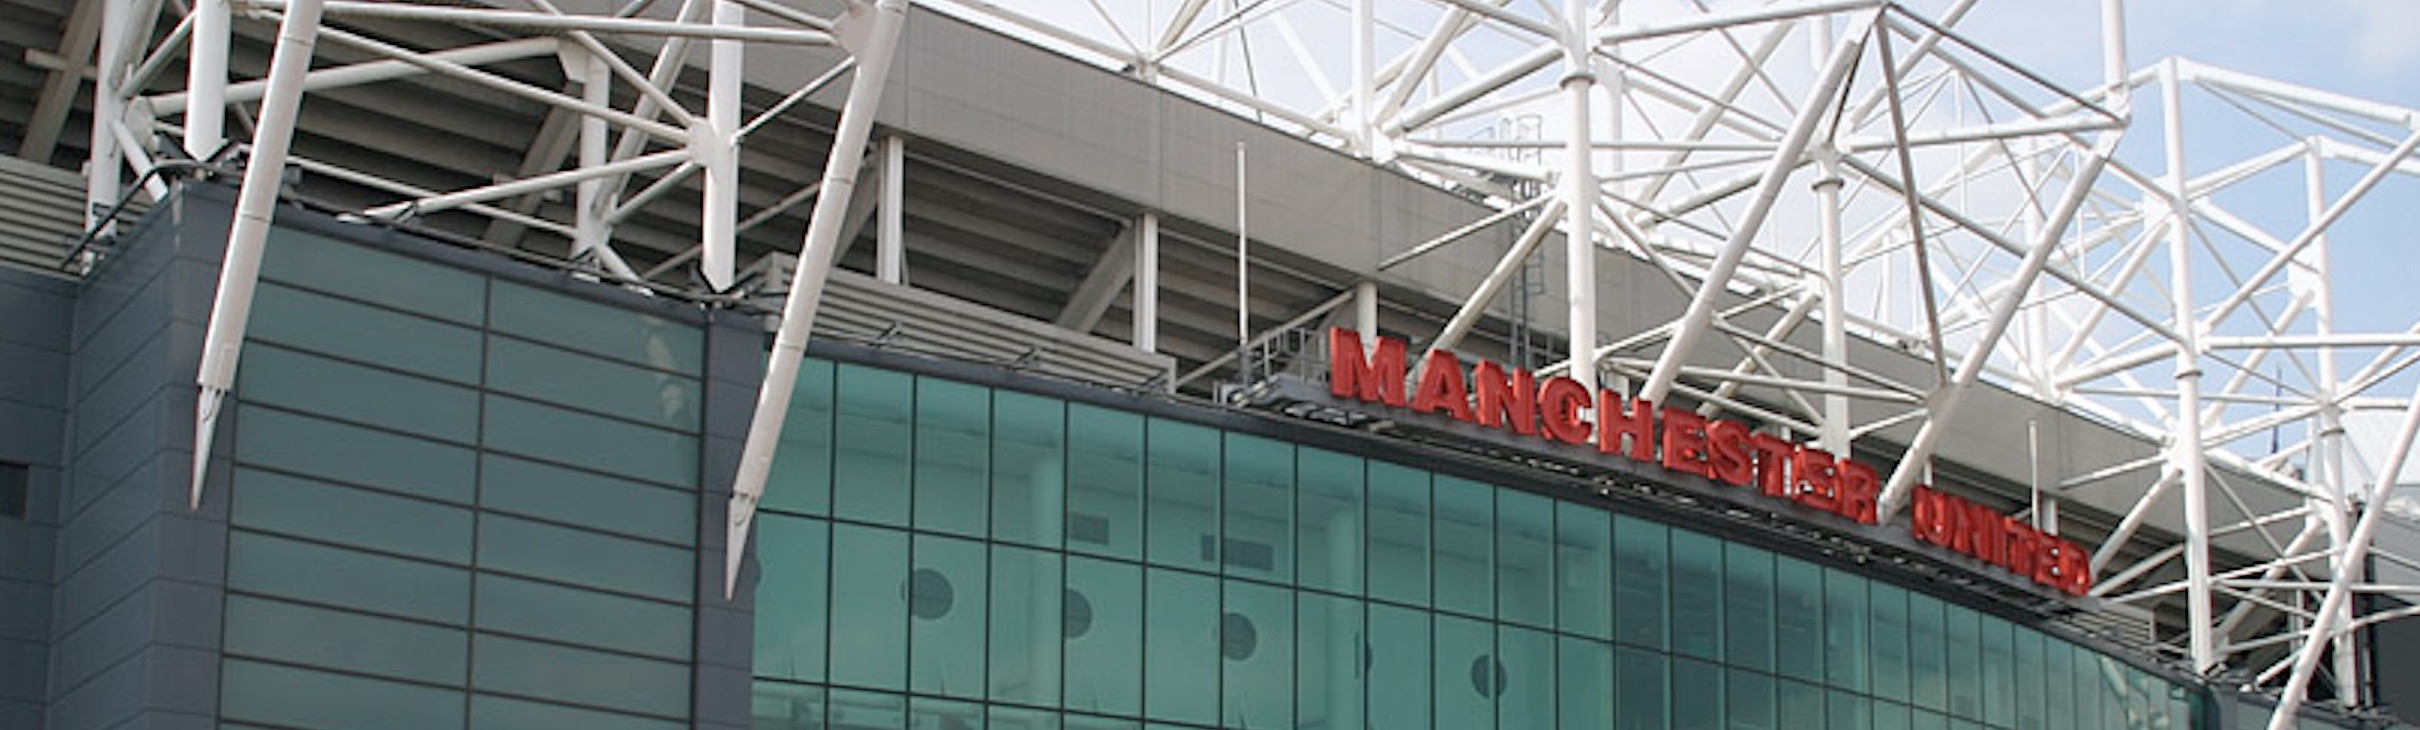 Man United V Liverpool - Daytrip by Coach & Ferry